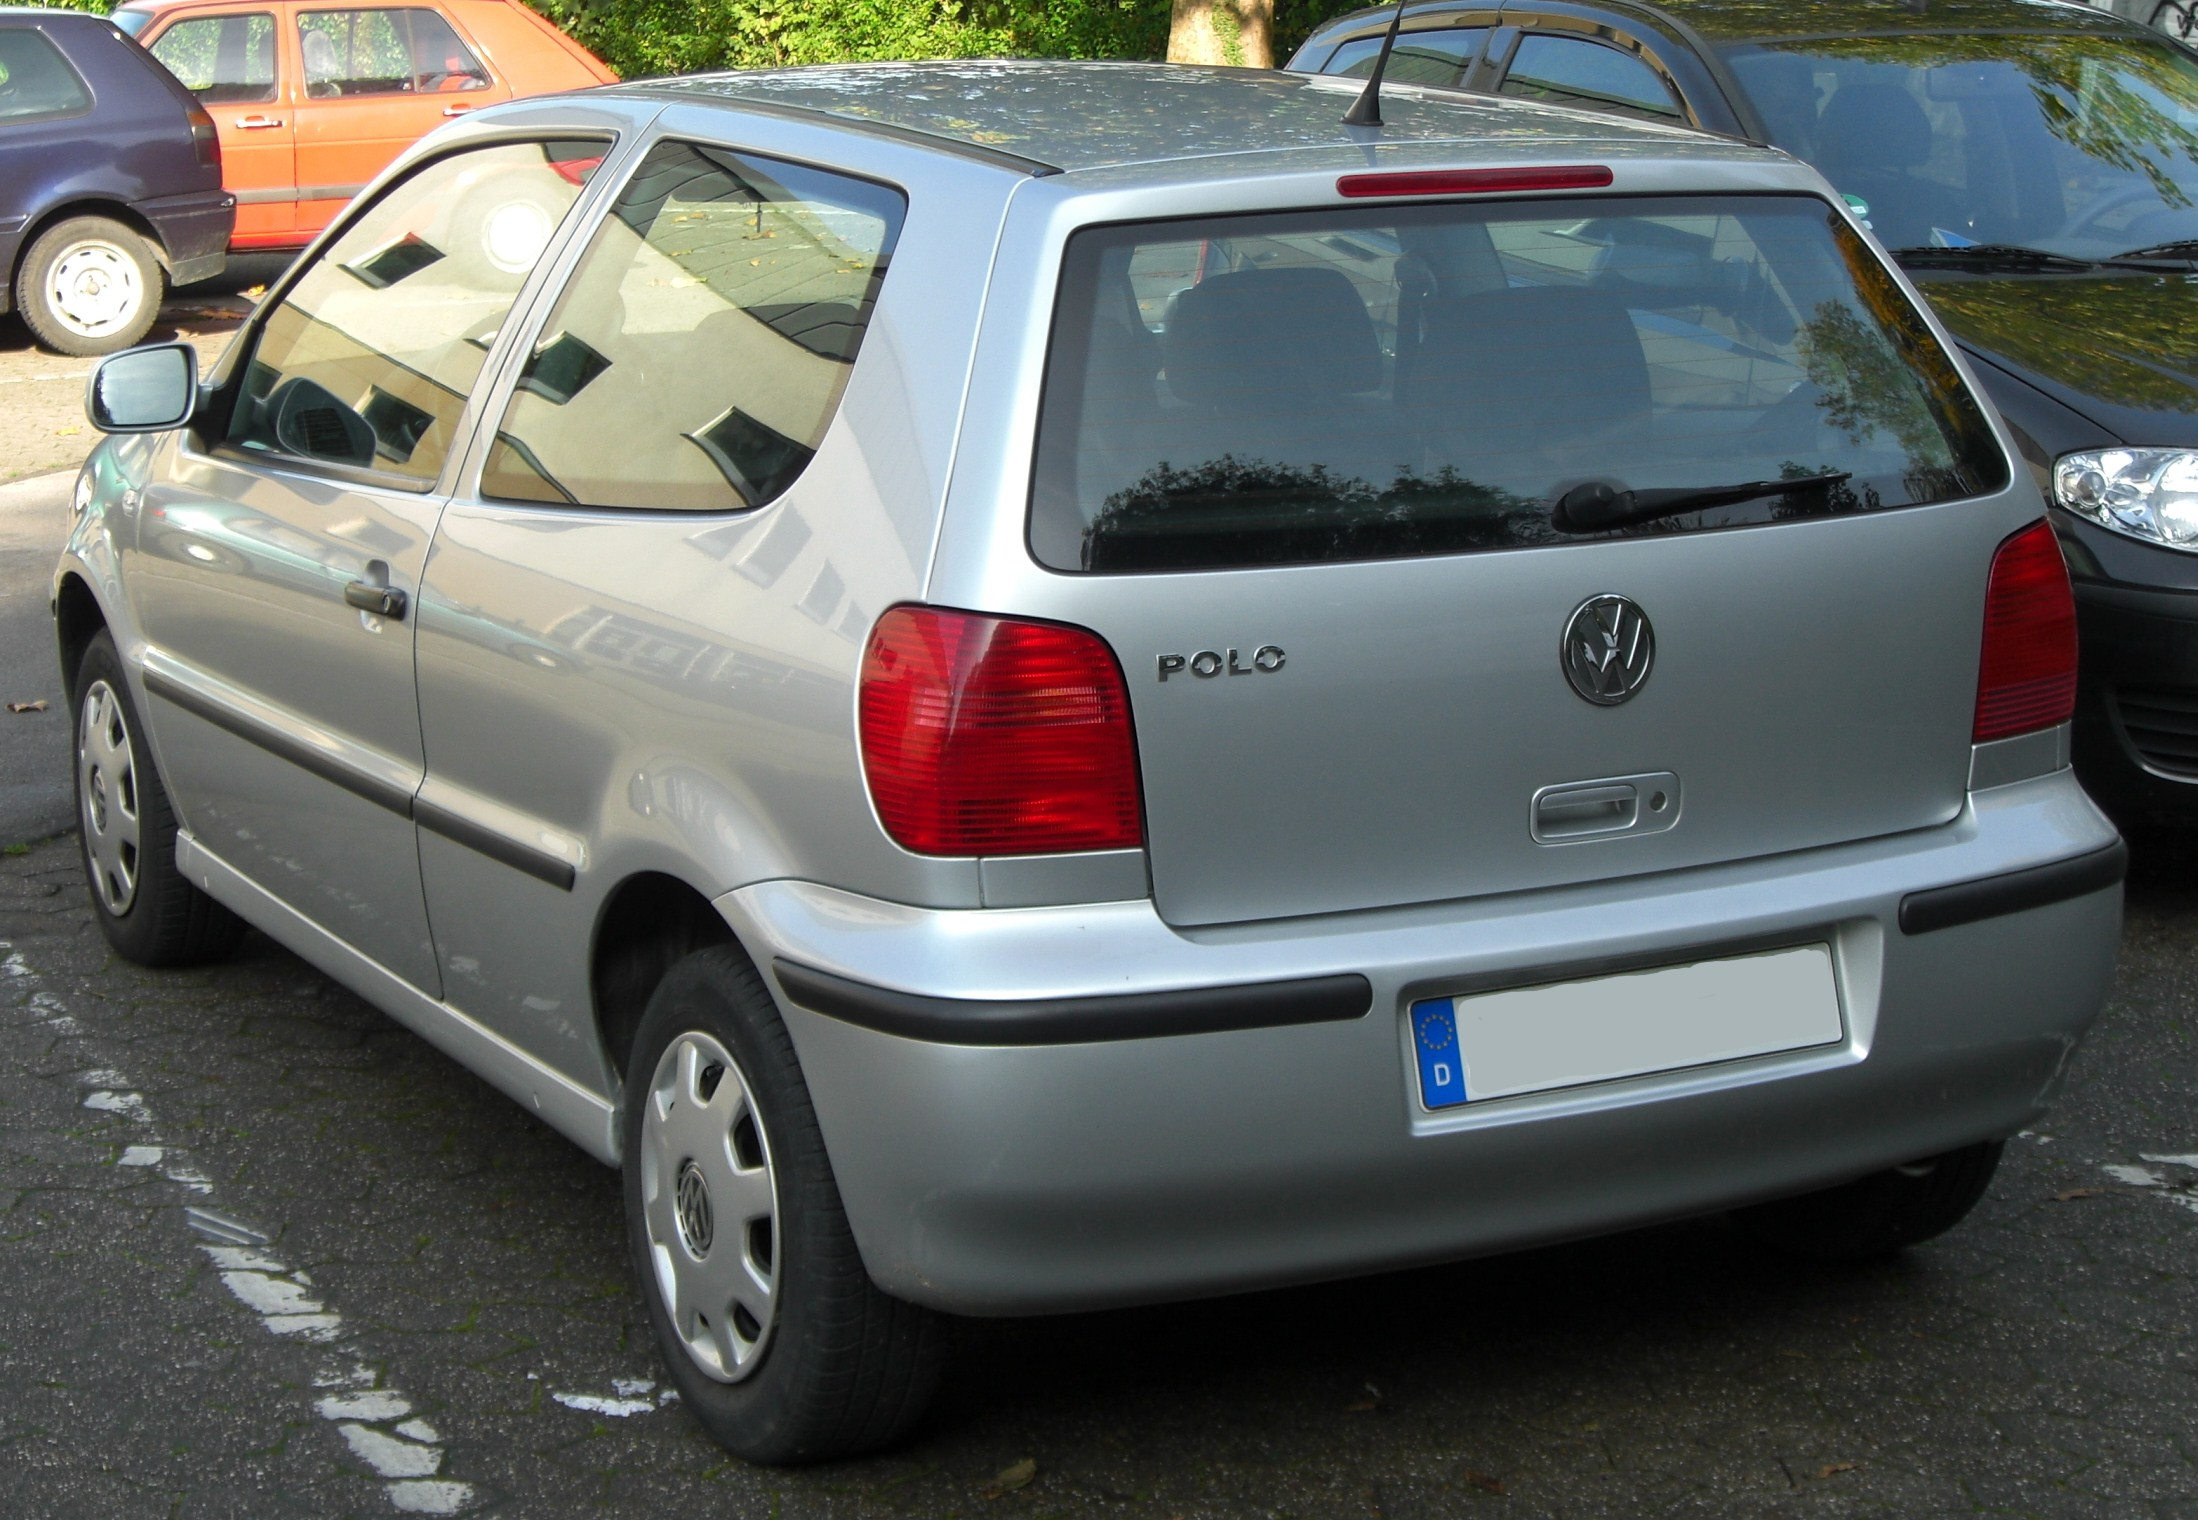 file vw polo iii 2 facelift rear jpg wikimedia commons